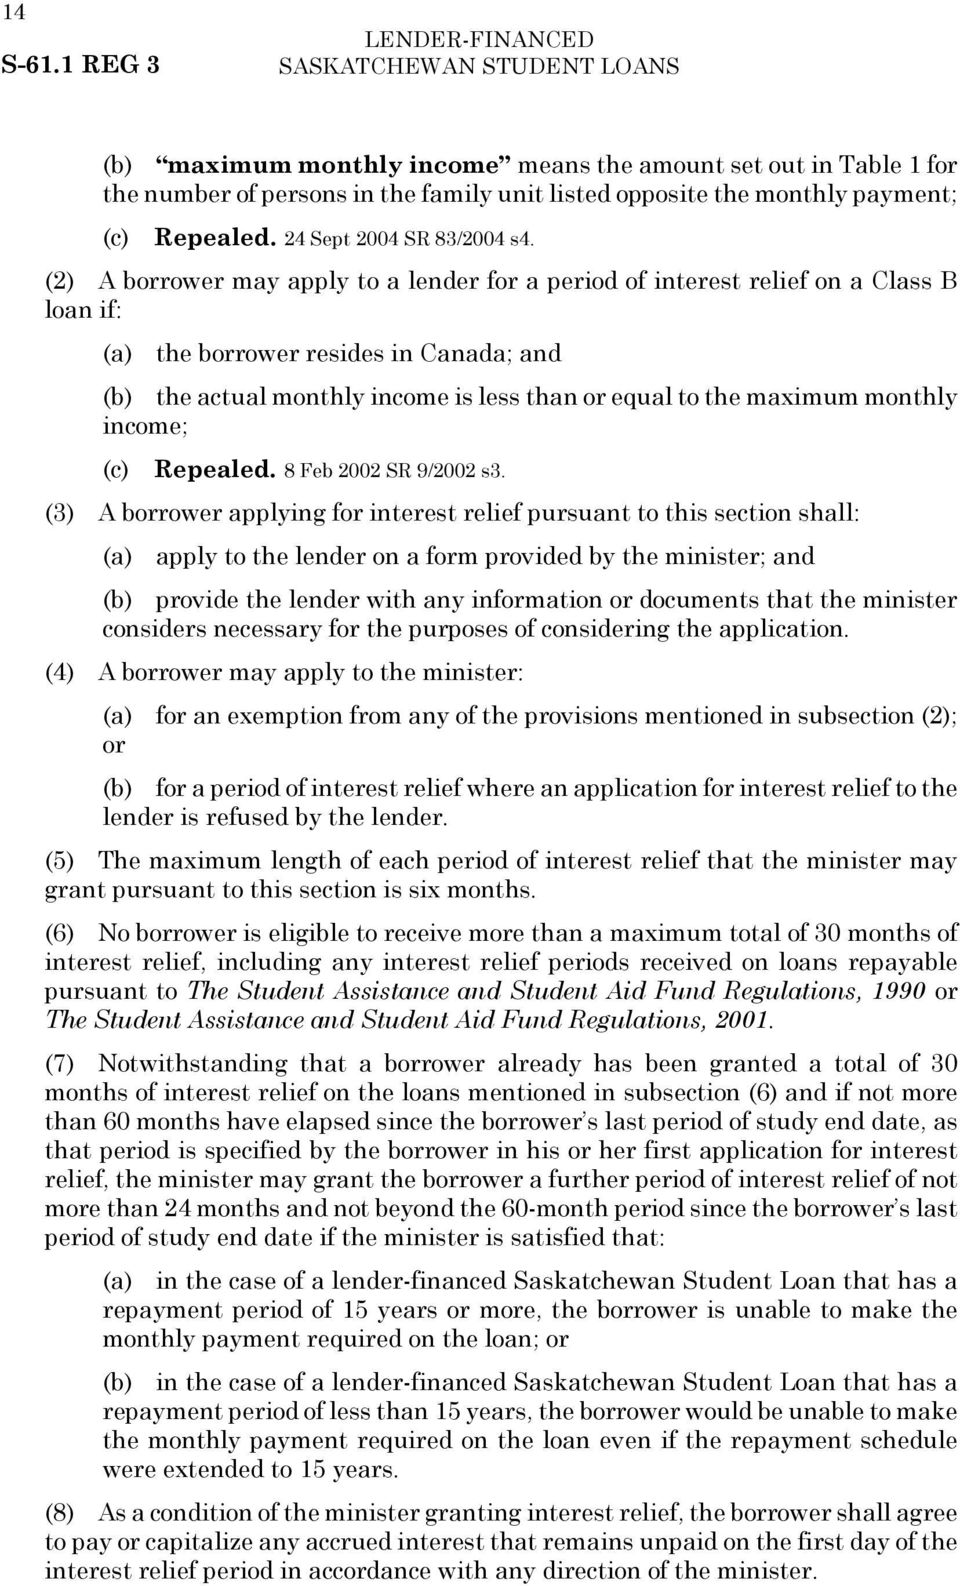 (2) A borrower may apply to a lender for a period of interest relief on a Class B loan if: (a) the borrower resides in Canada; and (b) the actual monthly income is less than or equal to the maximum